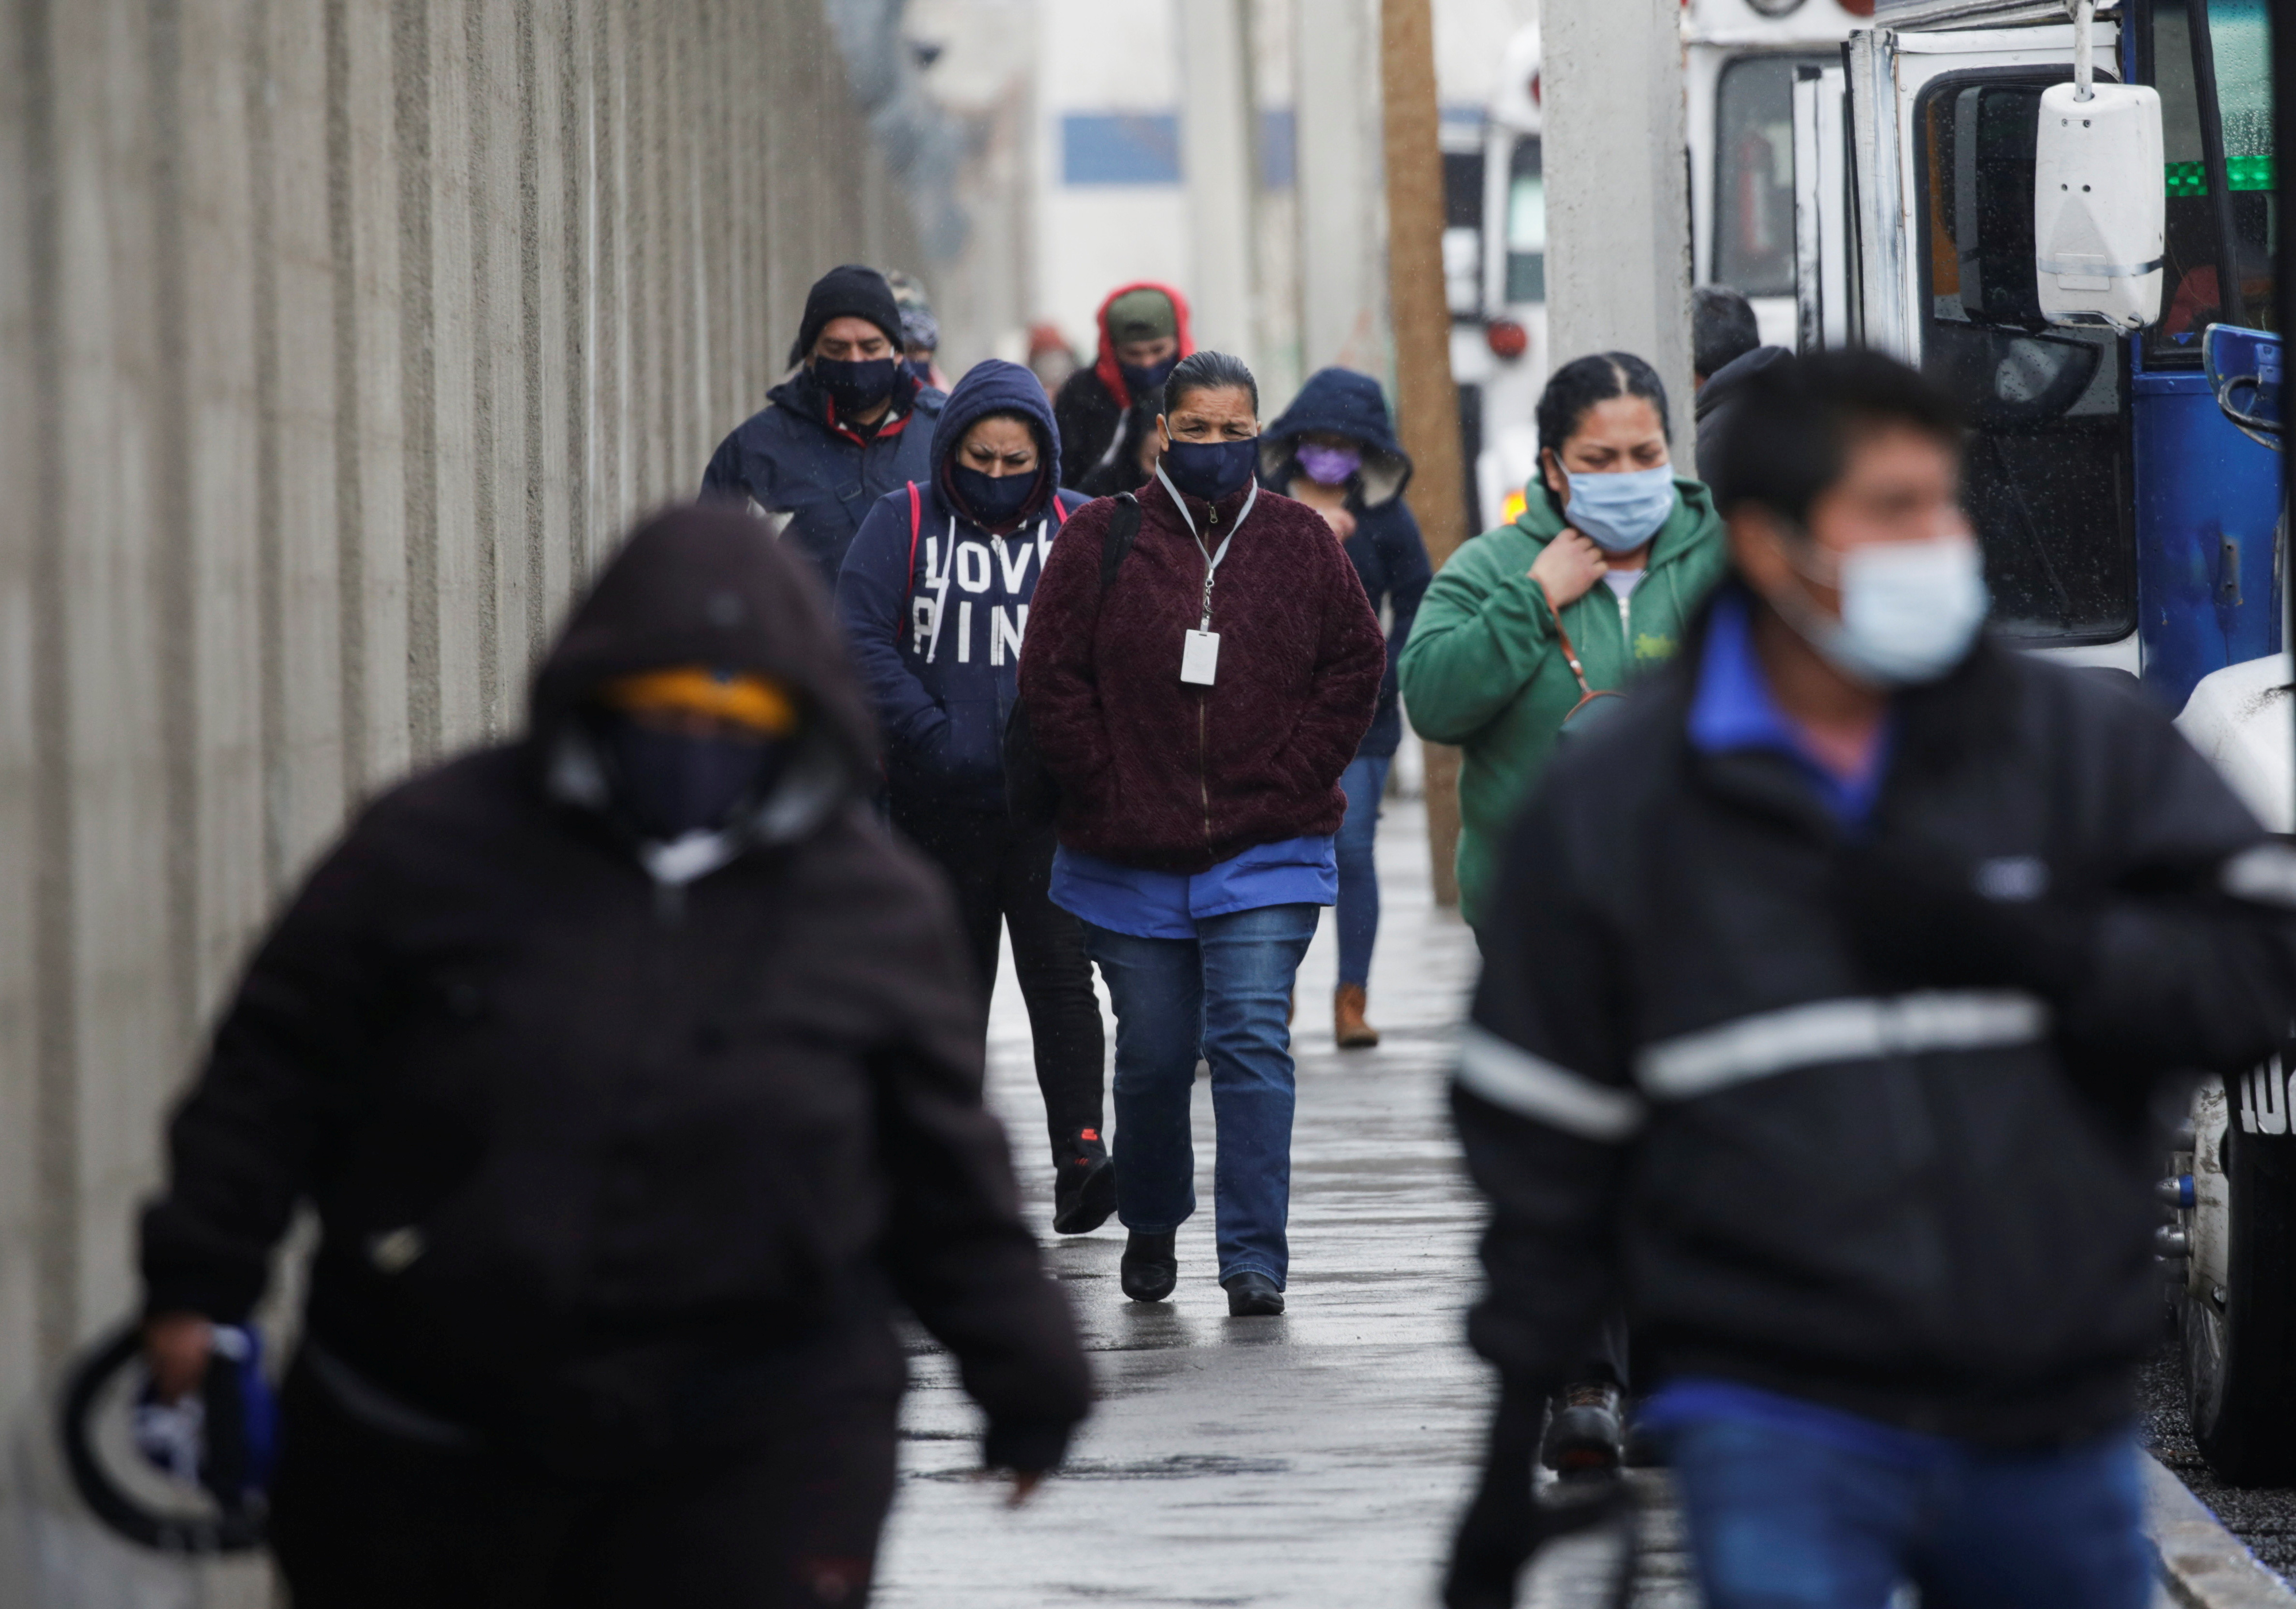 Employees of assembly factories are seen after their shift change during a cold front in Ciudad Juarez, Mexico February 16, 2021.